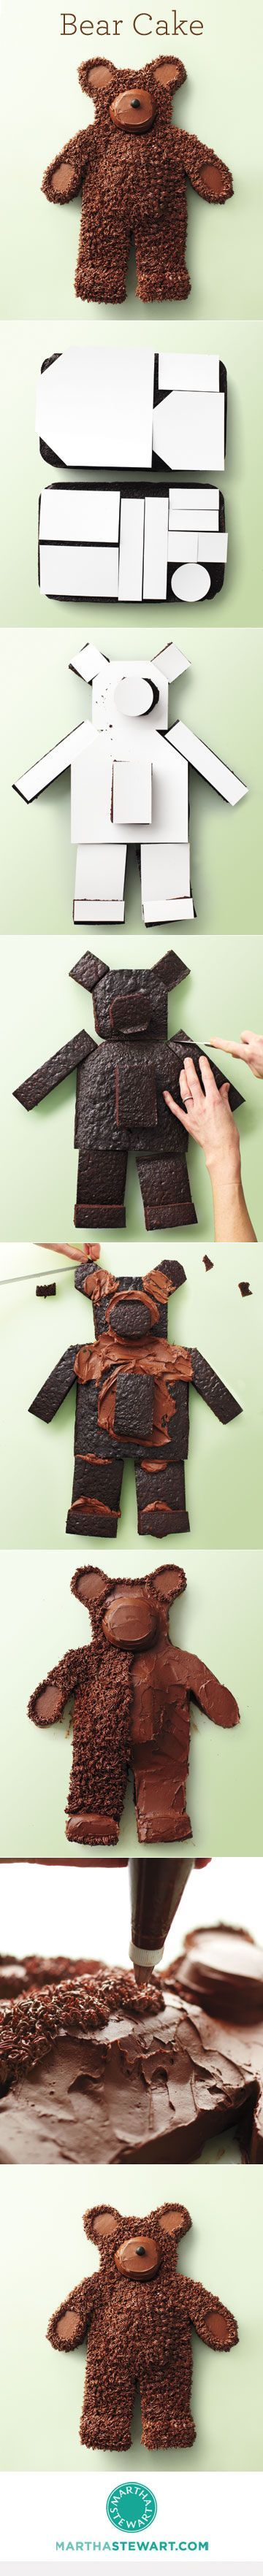 How to Make a Bear Cake // Think how much respect this would get you at a Baylor tailgate or party. Pretty simple if you have the patience for it!